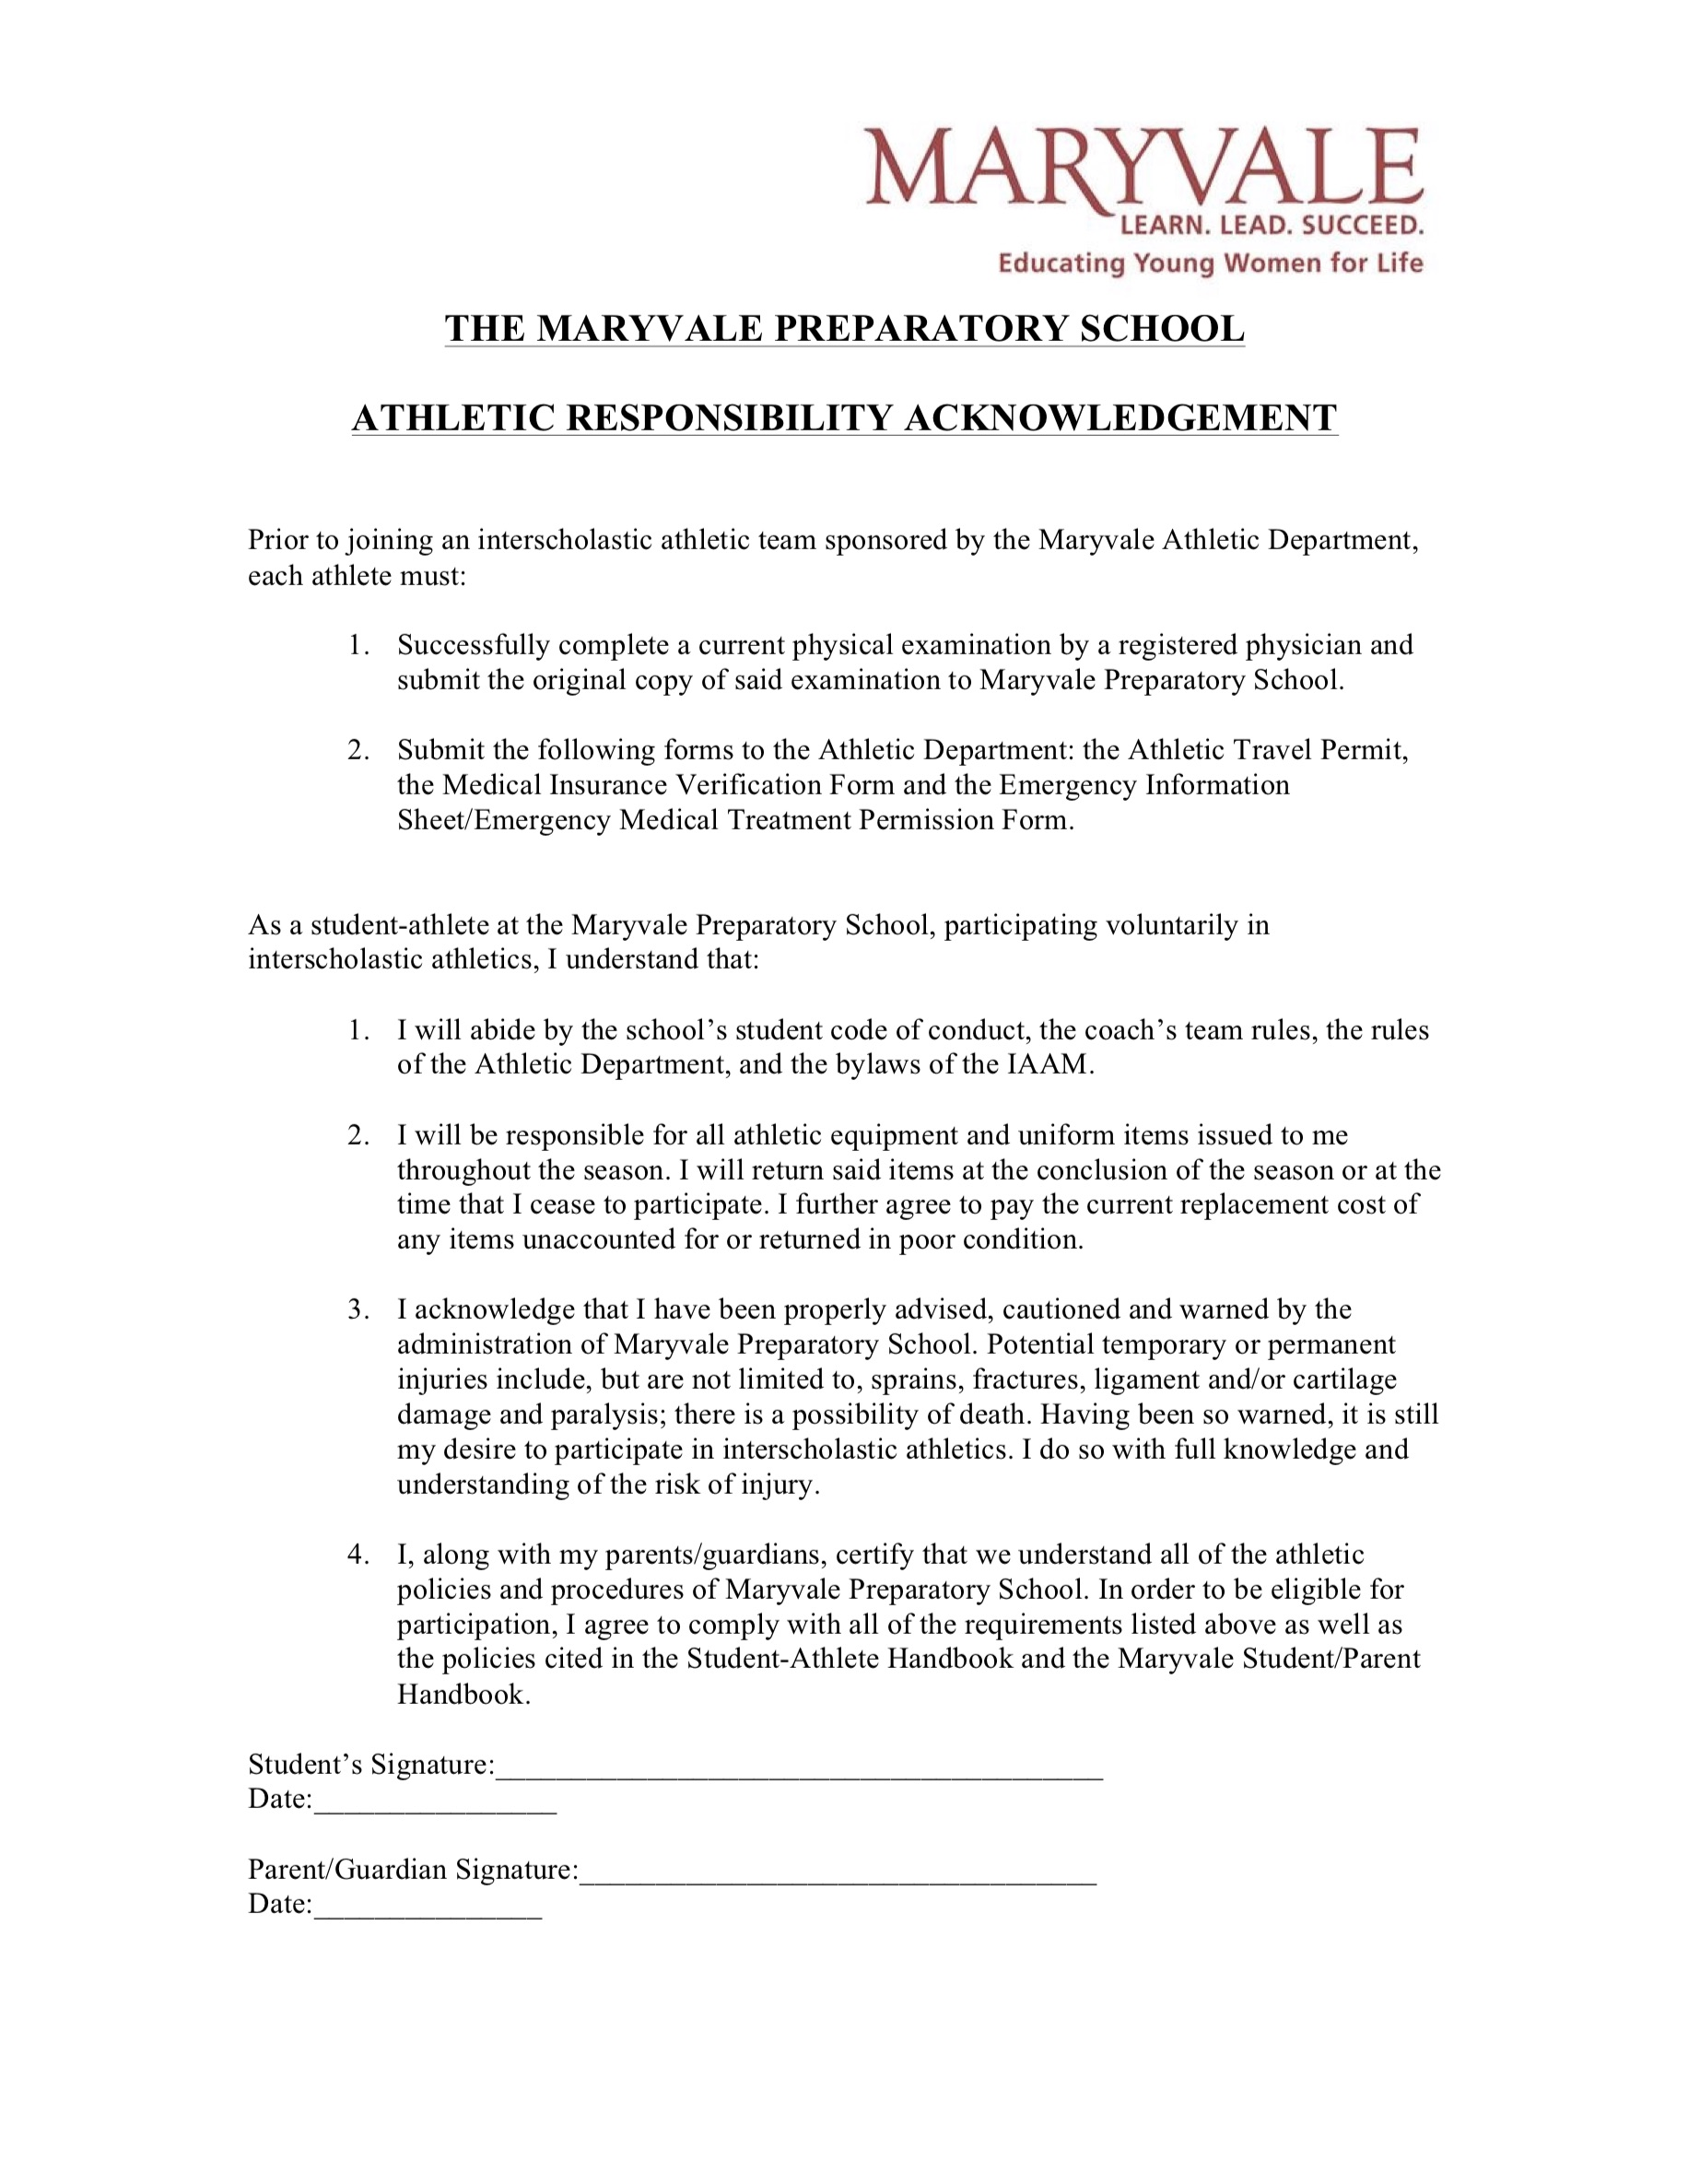 Maryvale Athletic Responsibility Form